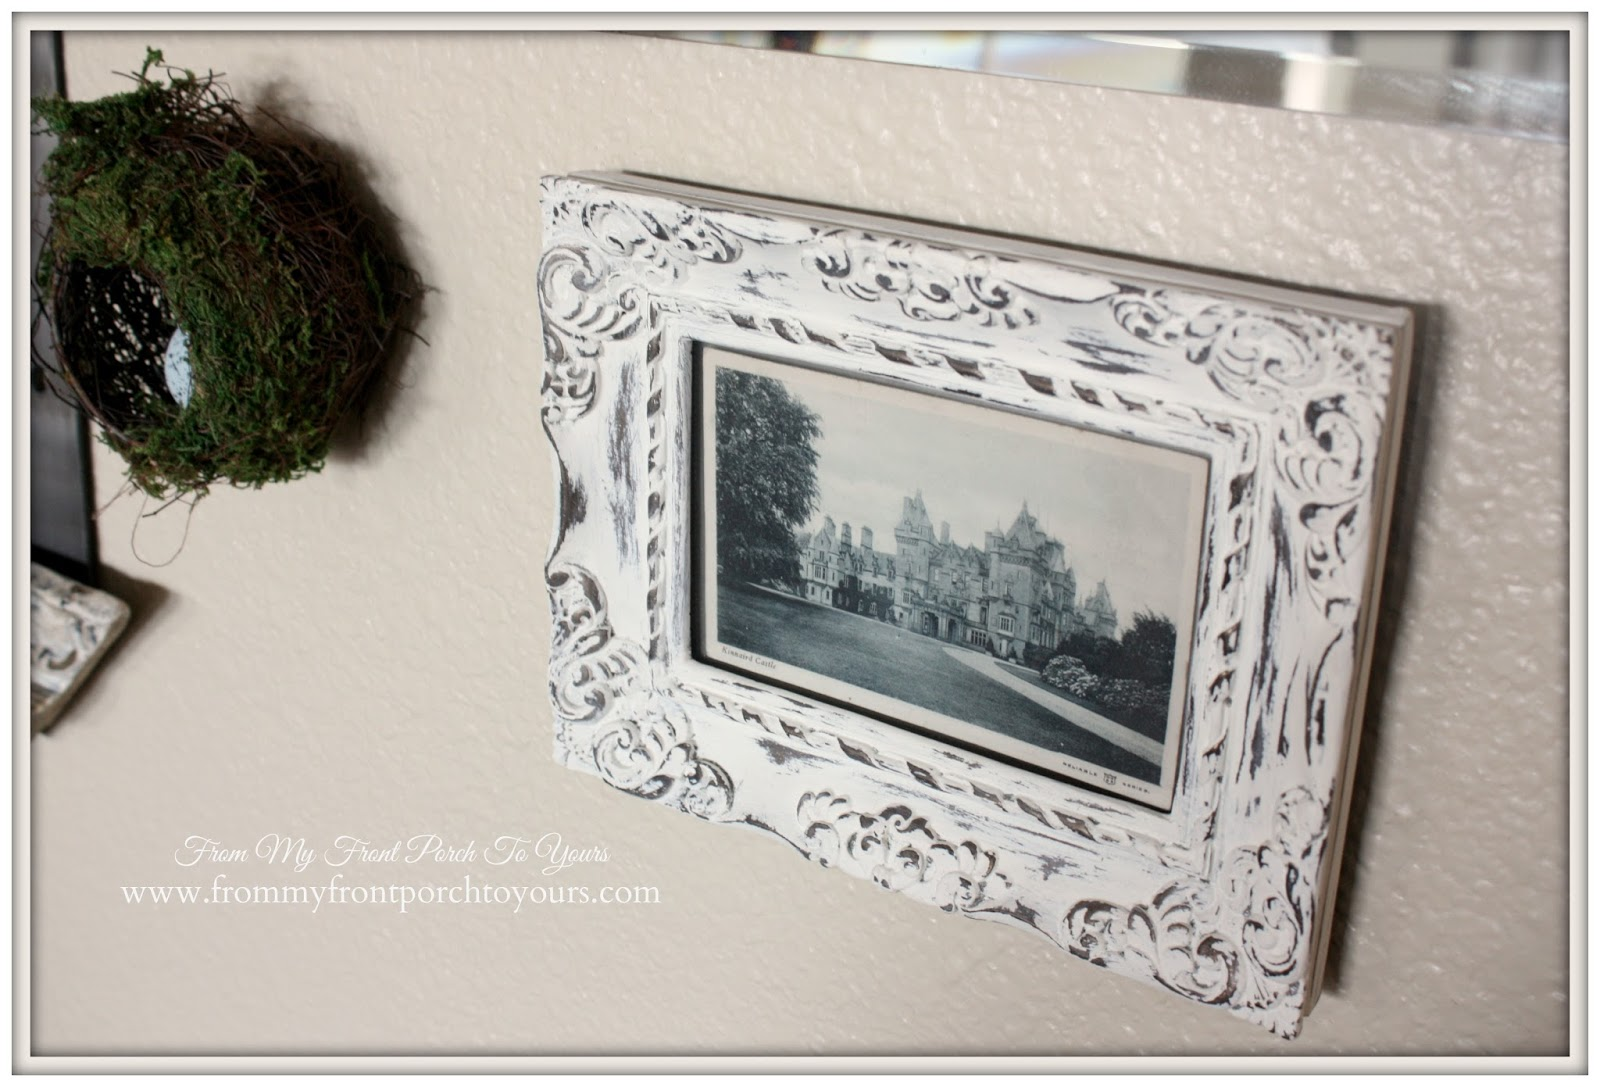 Gallery Wall- Kinnaird Castle Vintage Post Card- The Magnolia Market-From My Front Porch To Yours